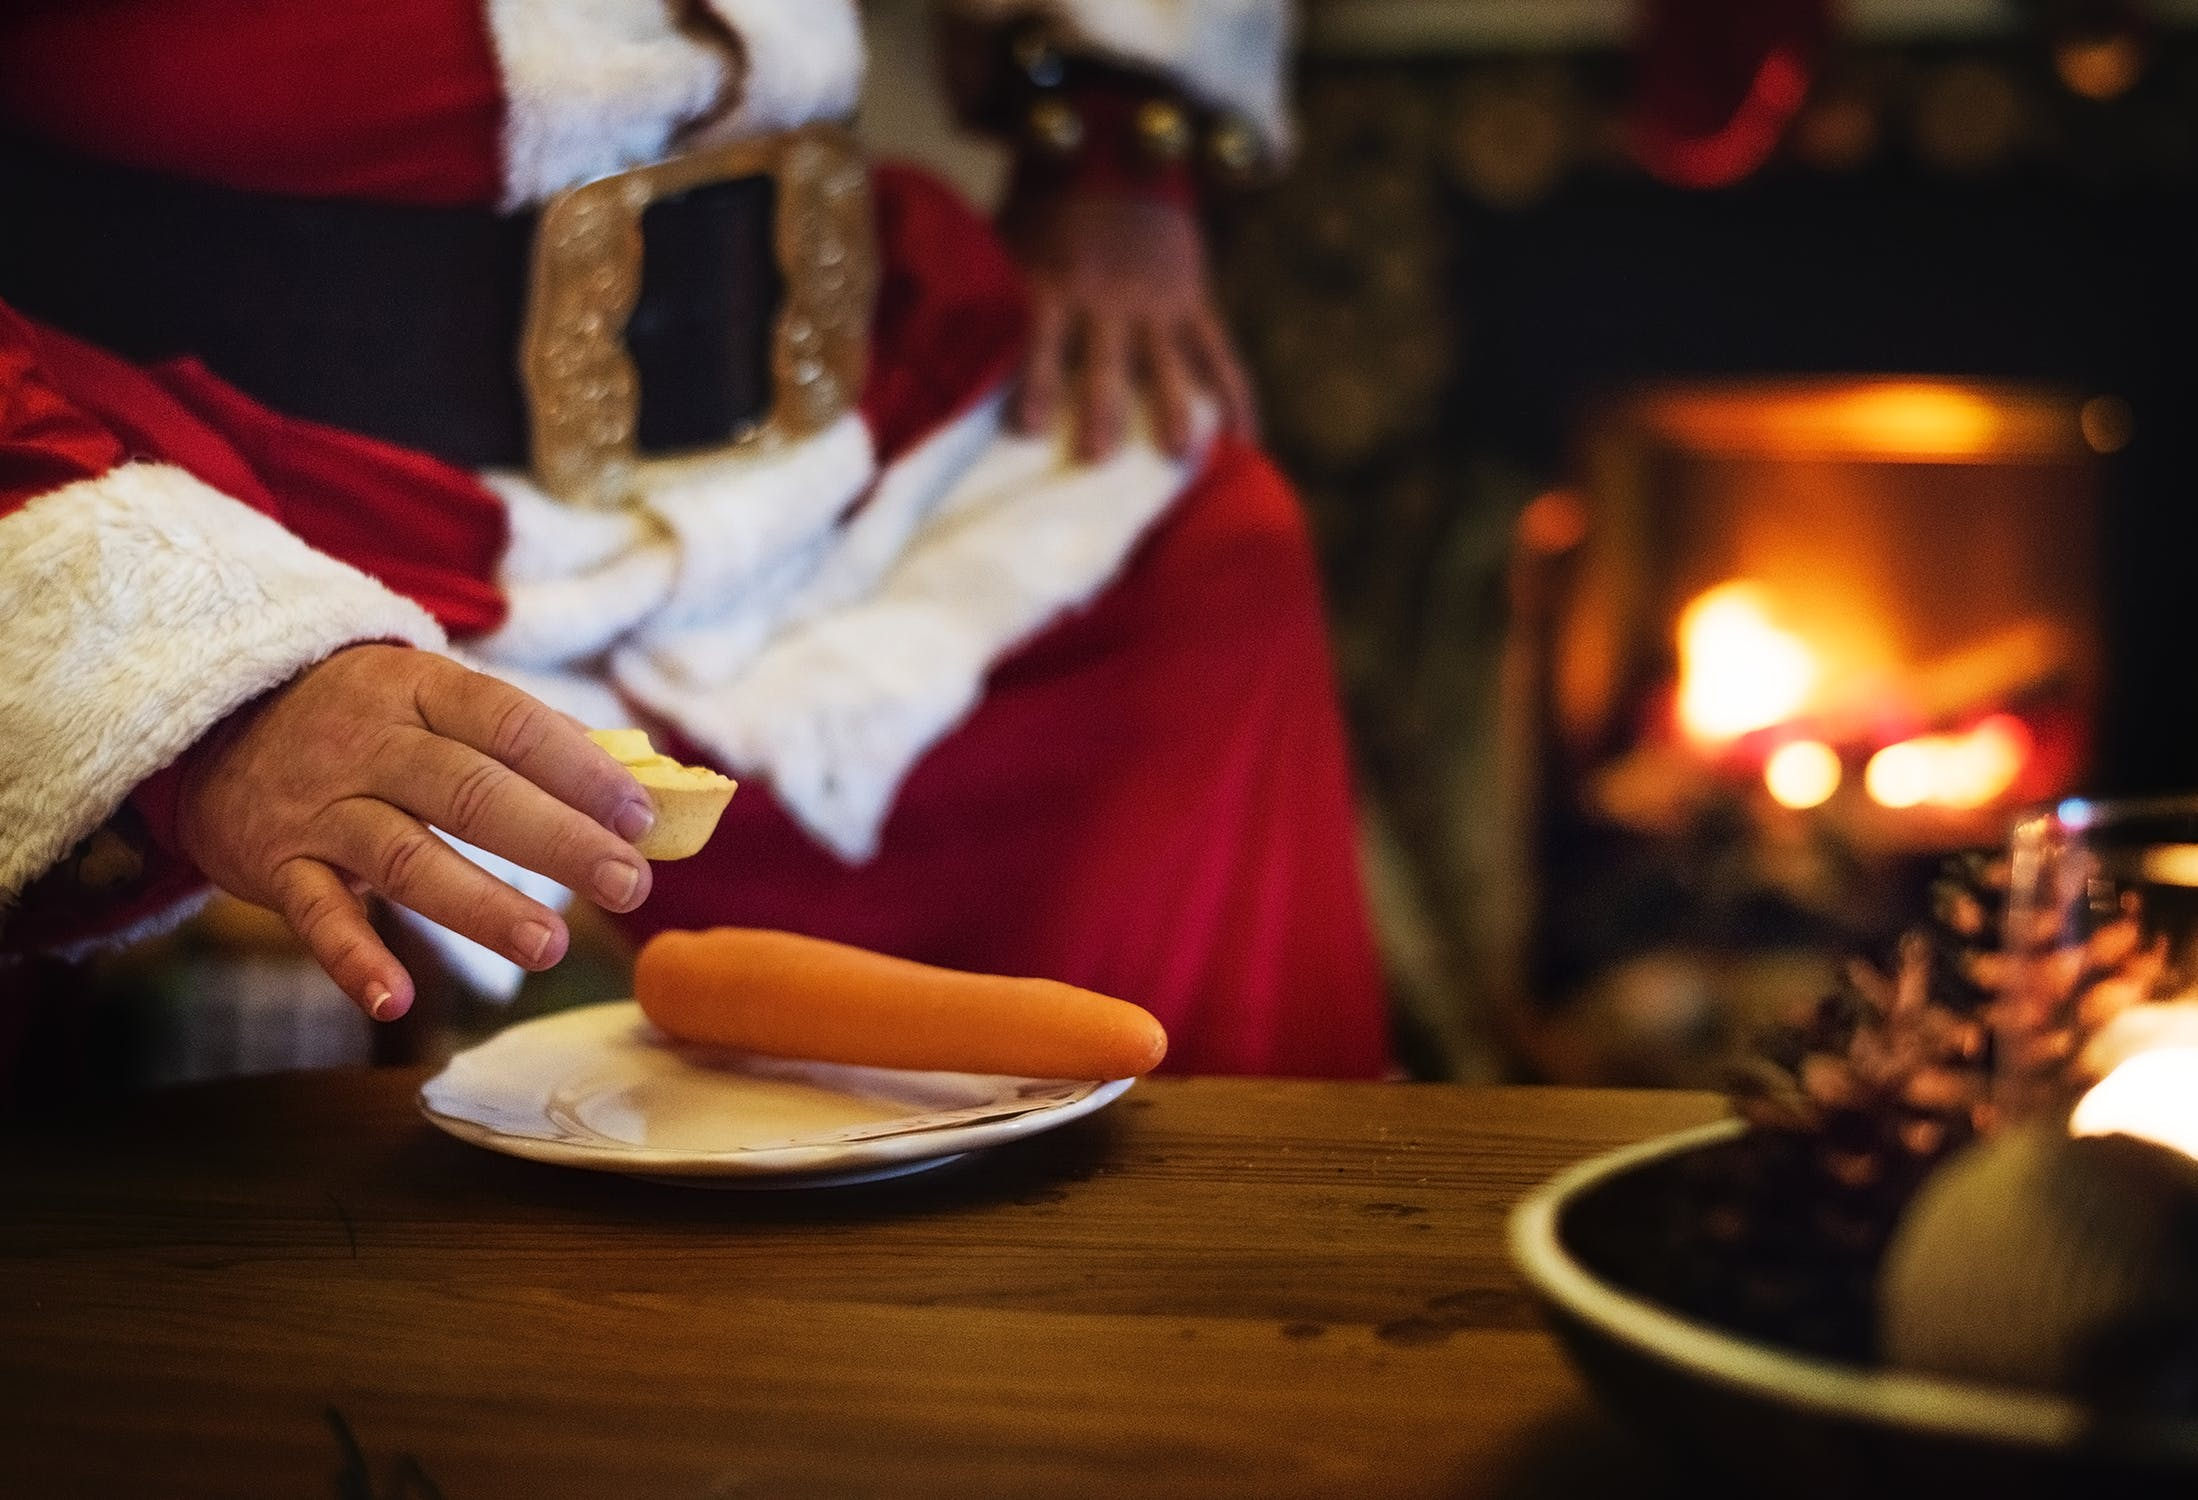 Kids who believe Santa's real put out mince pies and a carrot for rudolph